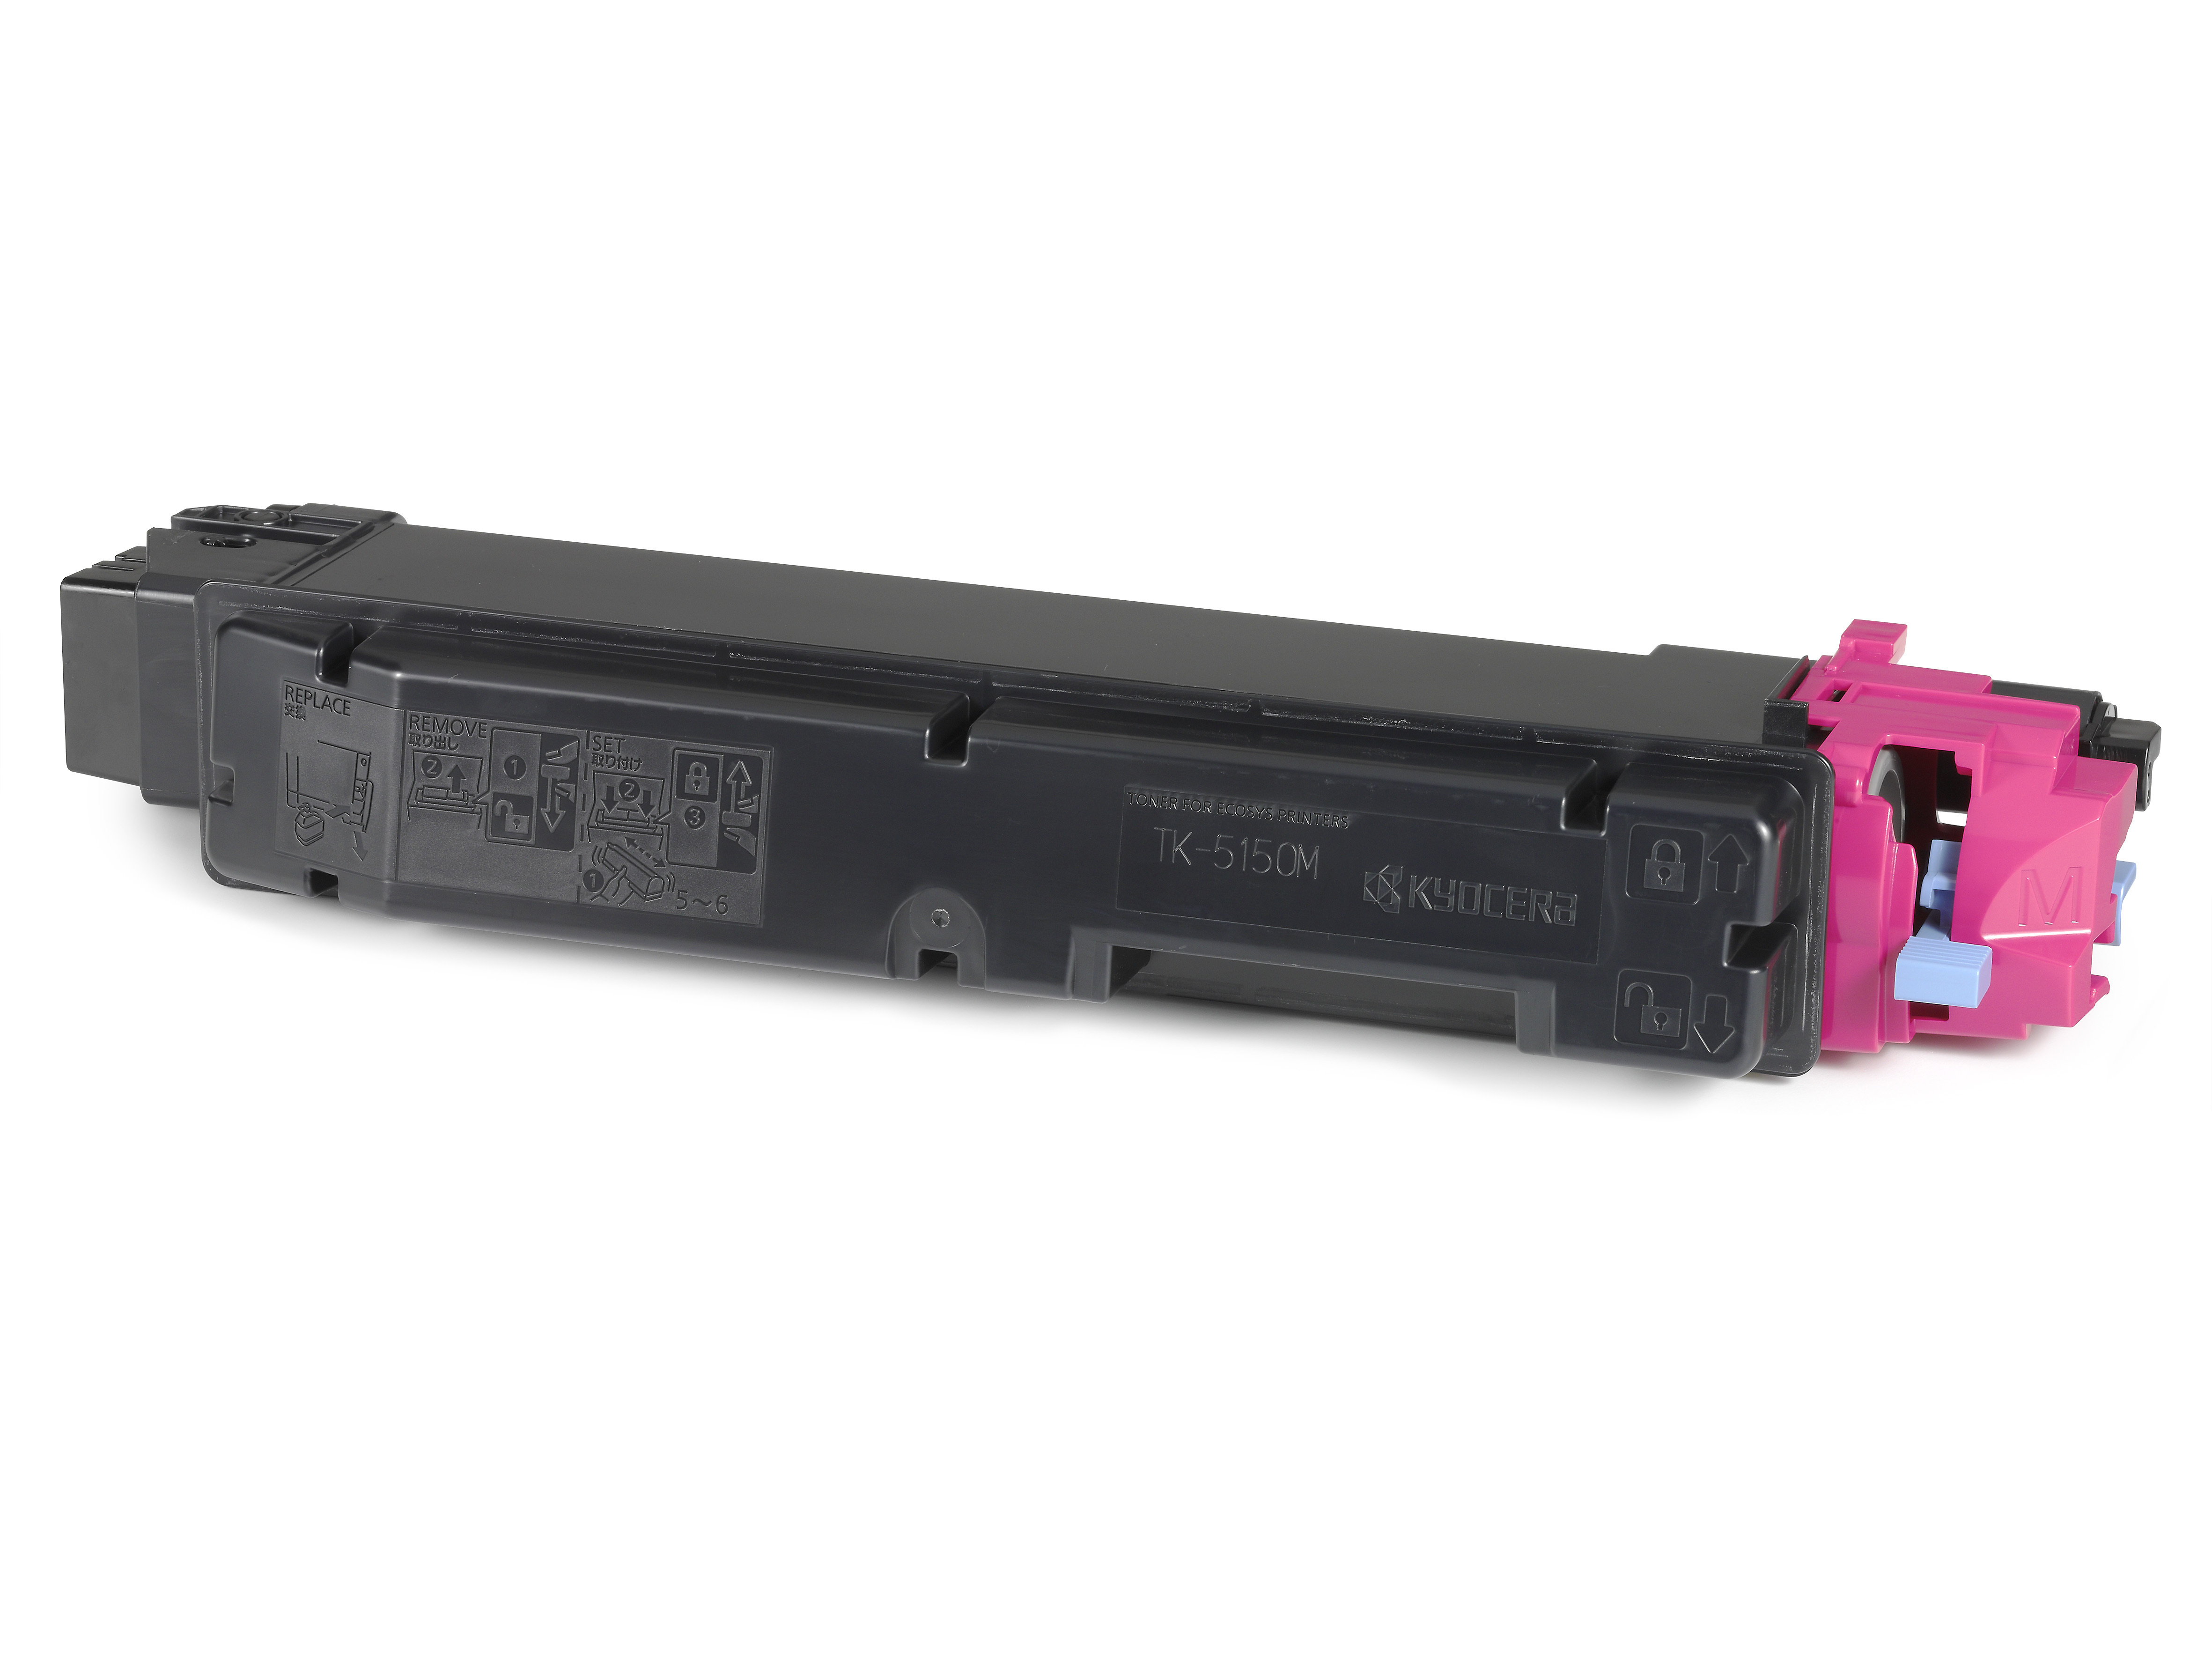 Toner Kit Tk-5150m Magenta10000pages Tk-5150m - WC01